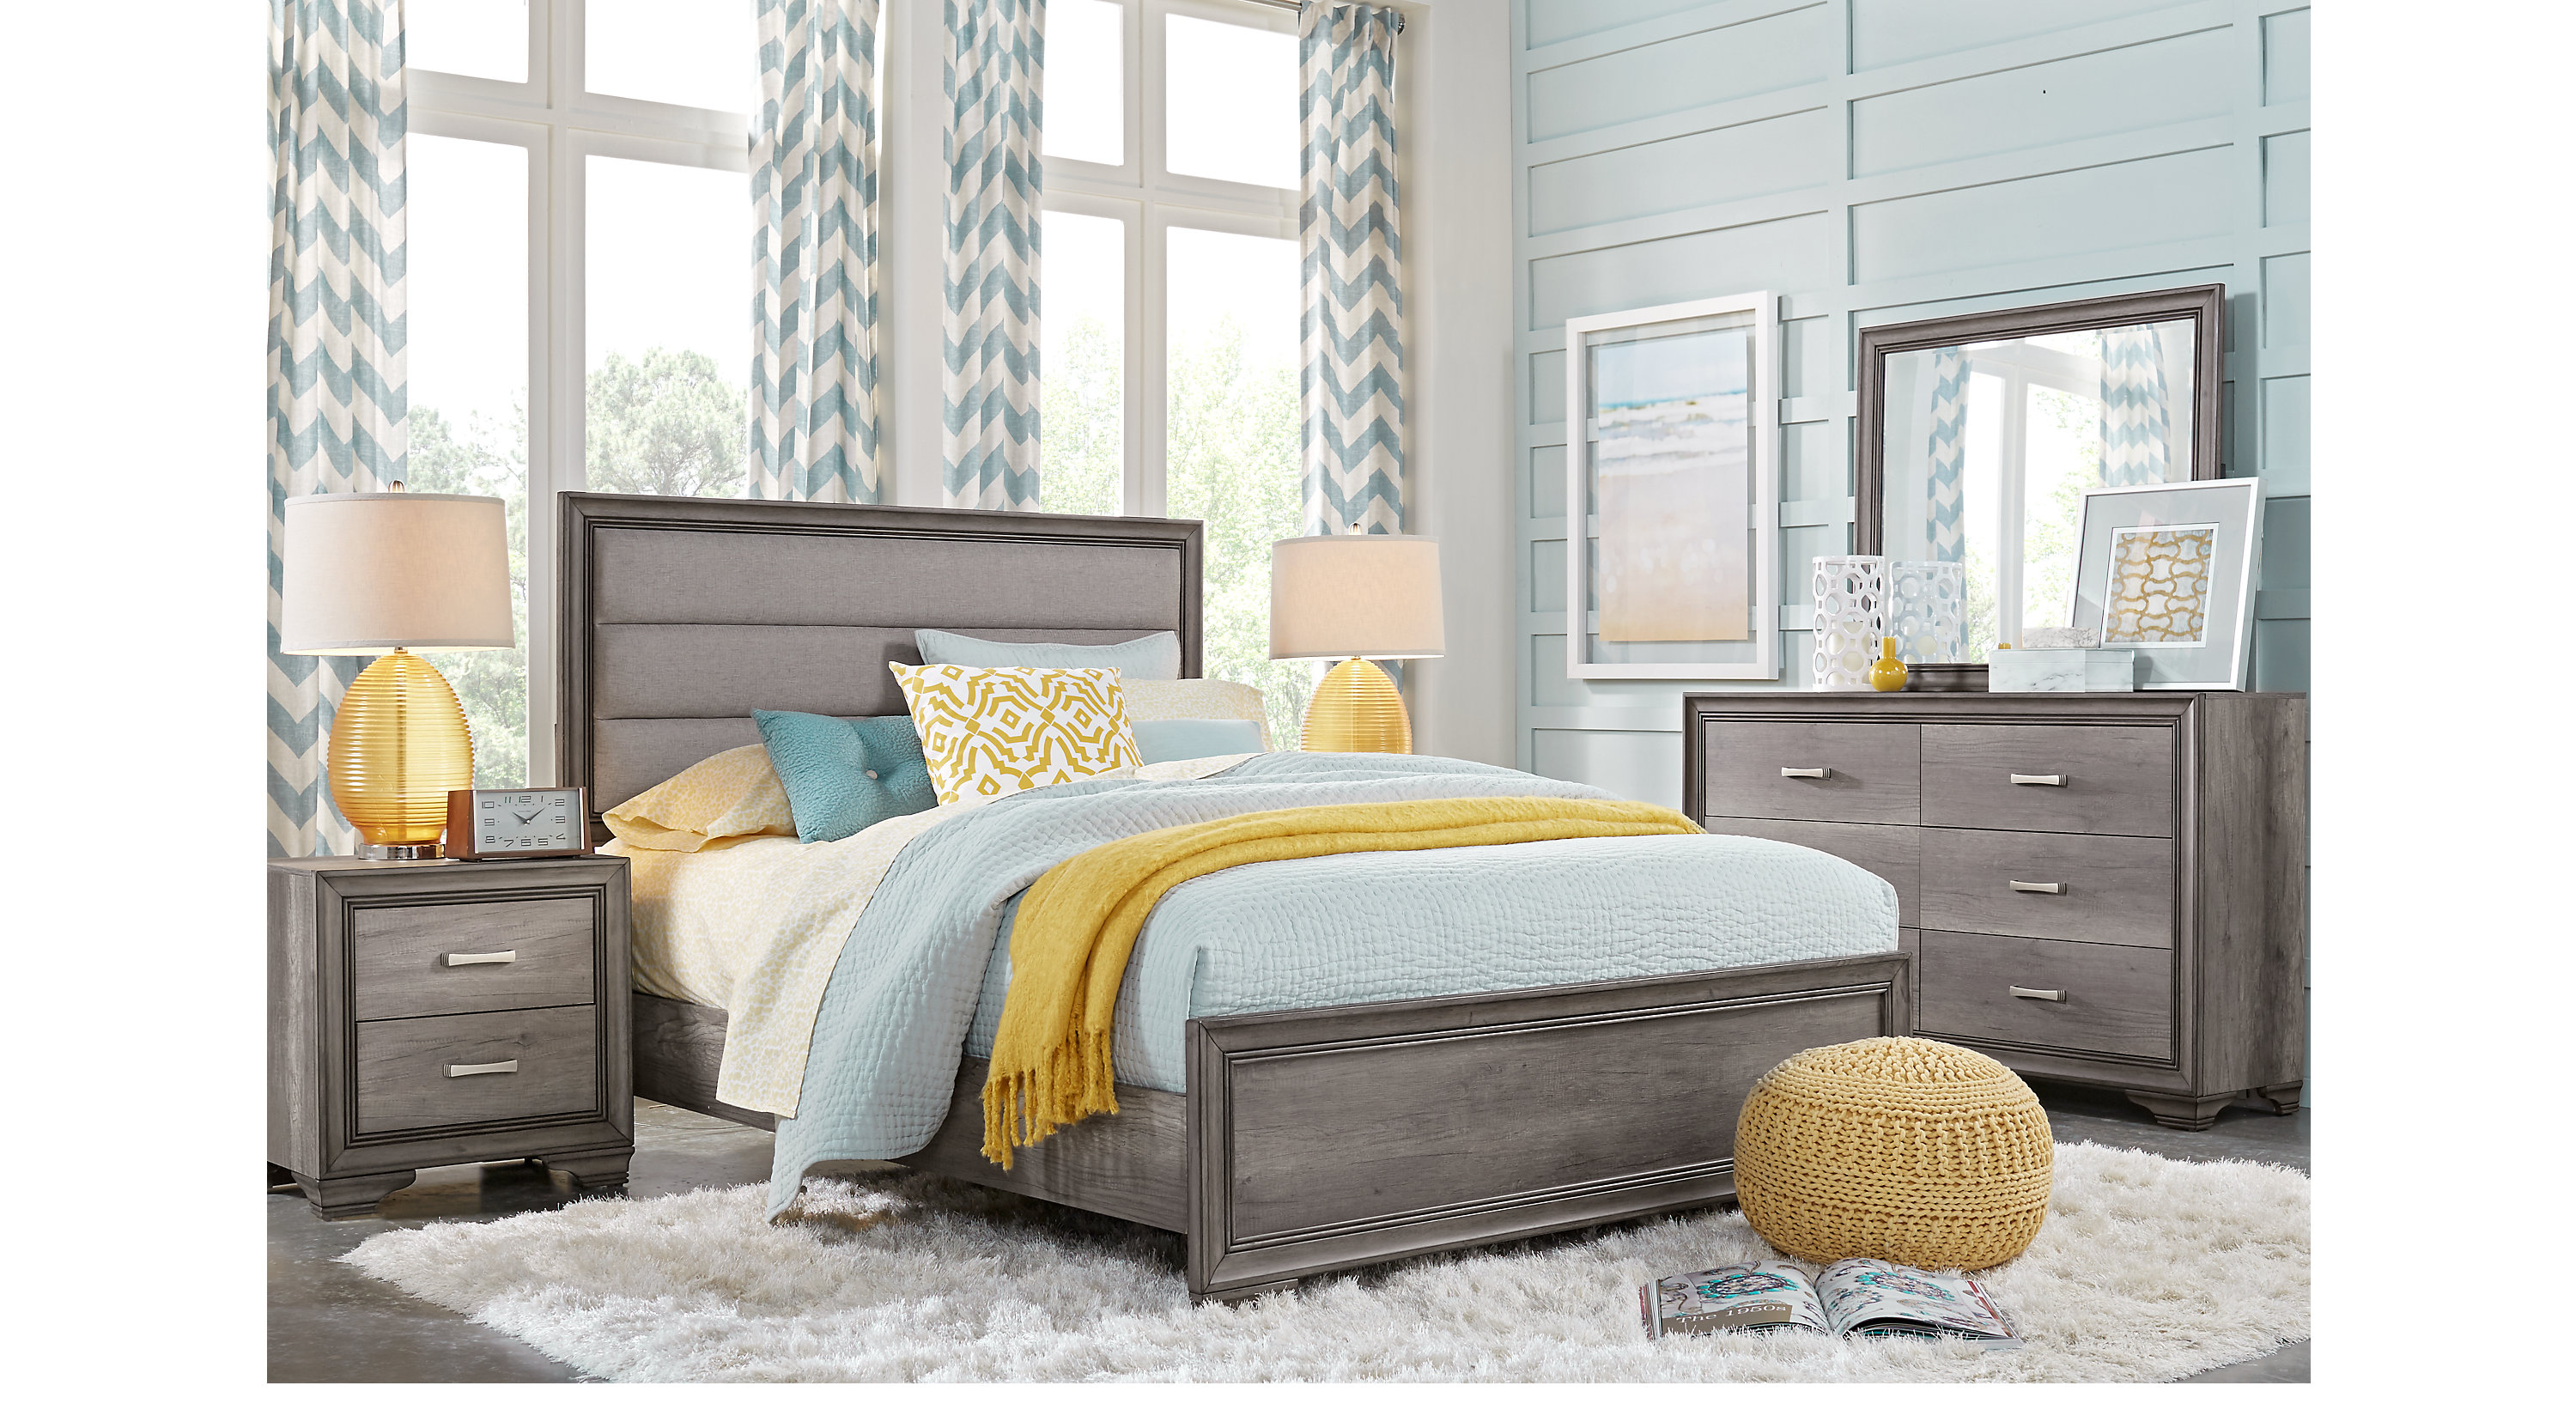 Marlow gray 5 pc queen panel bedroom transitional for 3 bedroom set